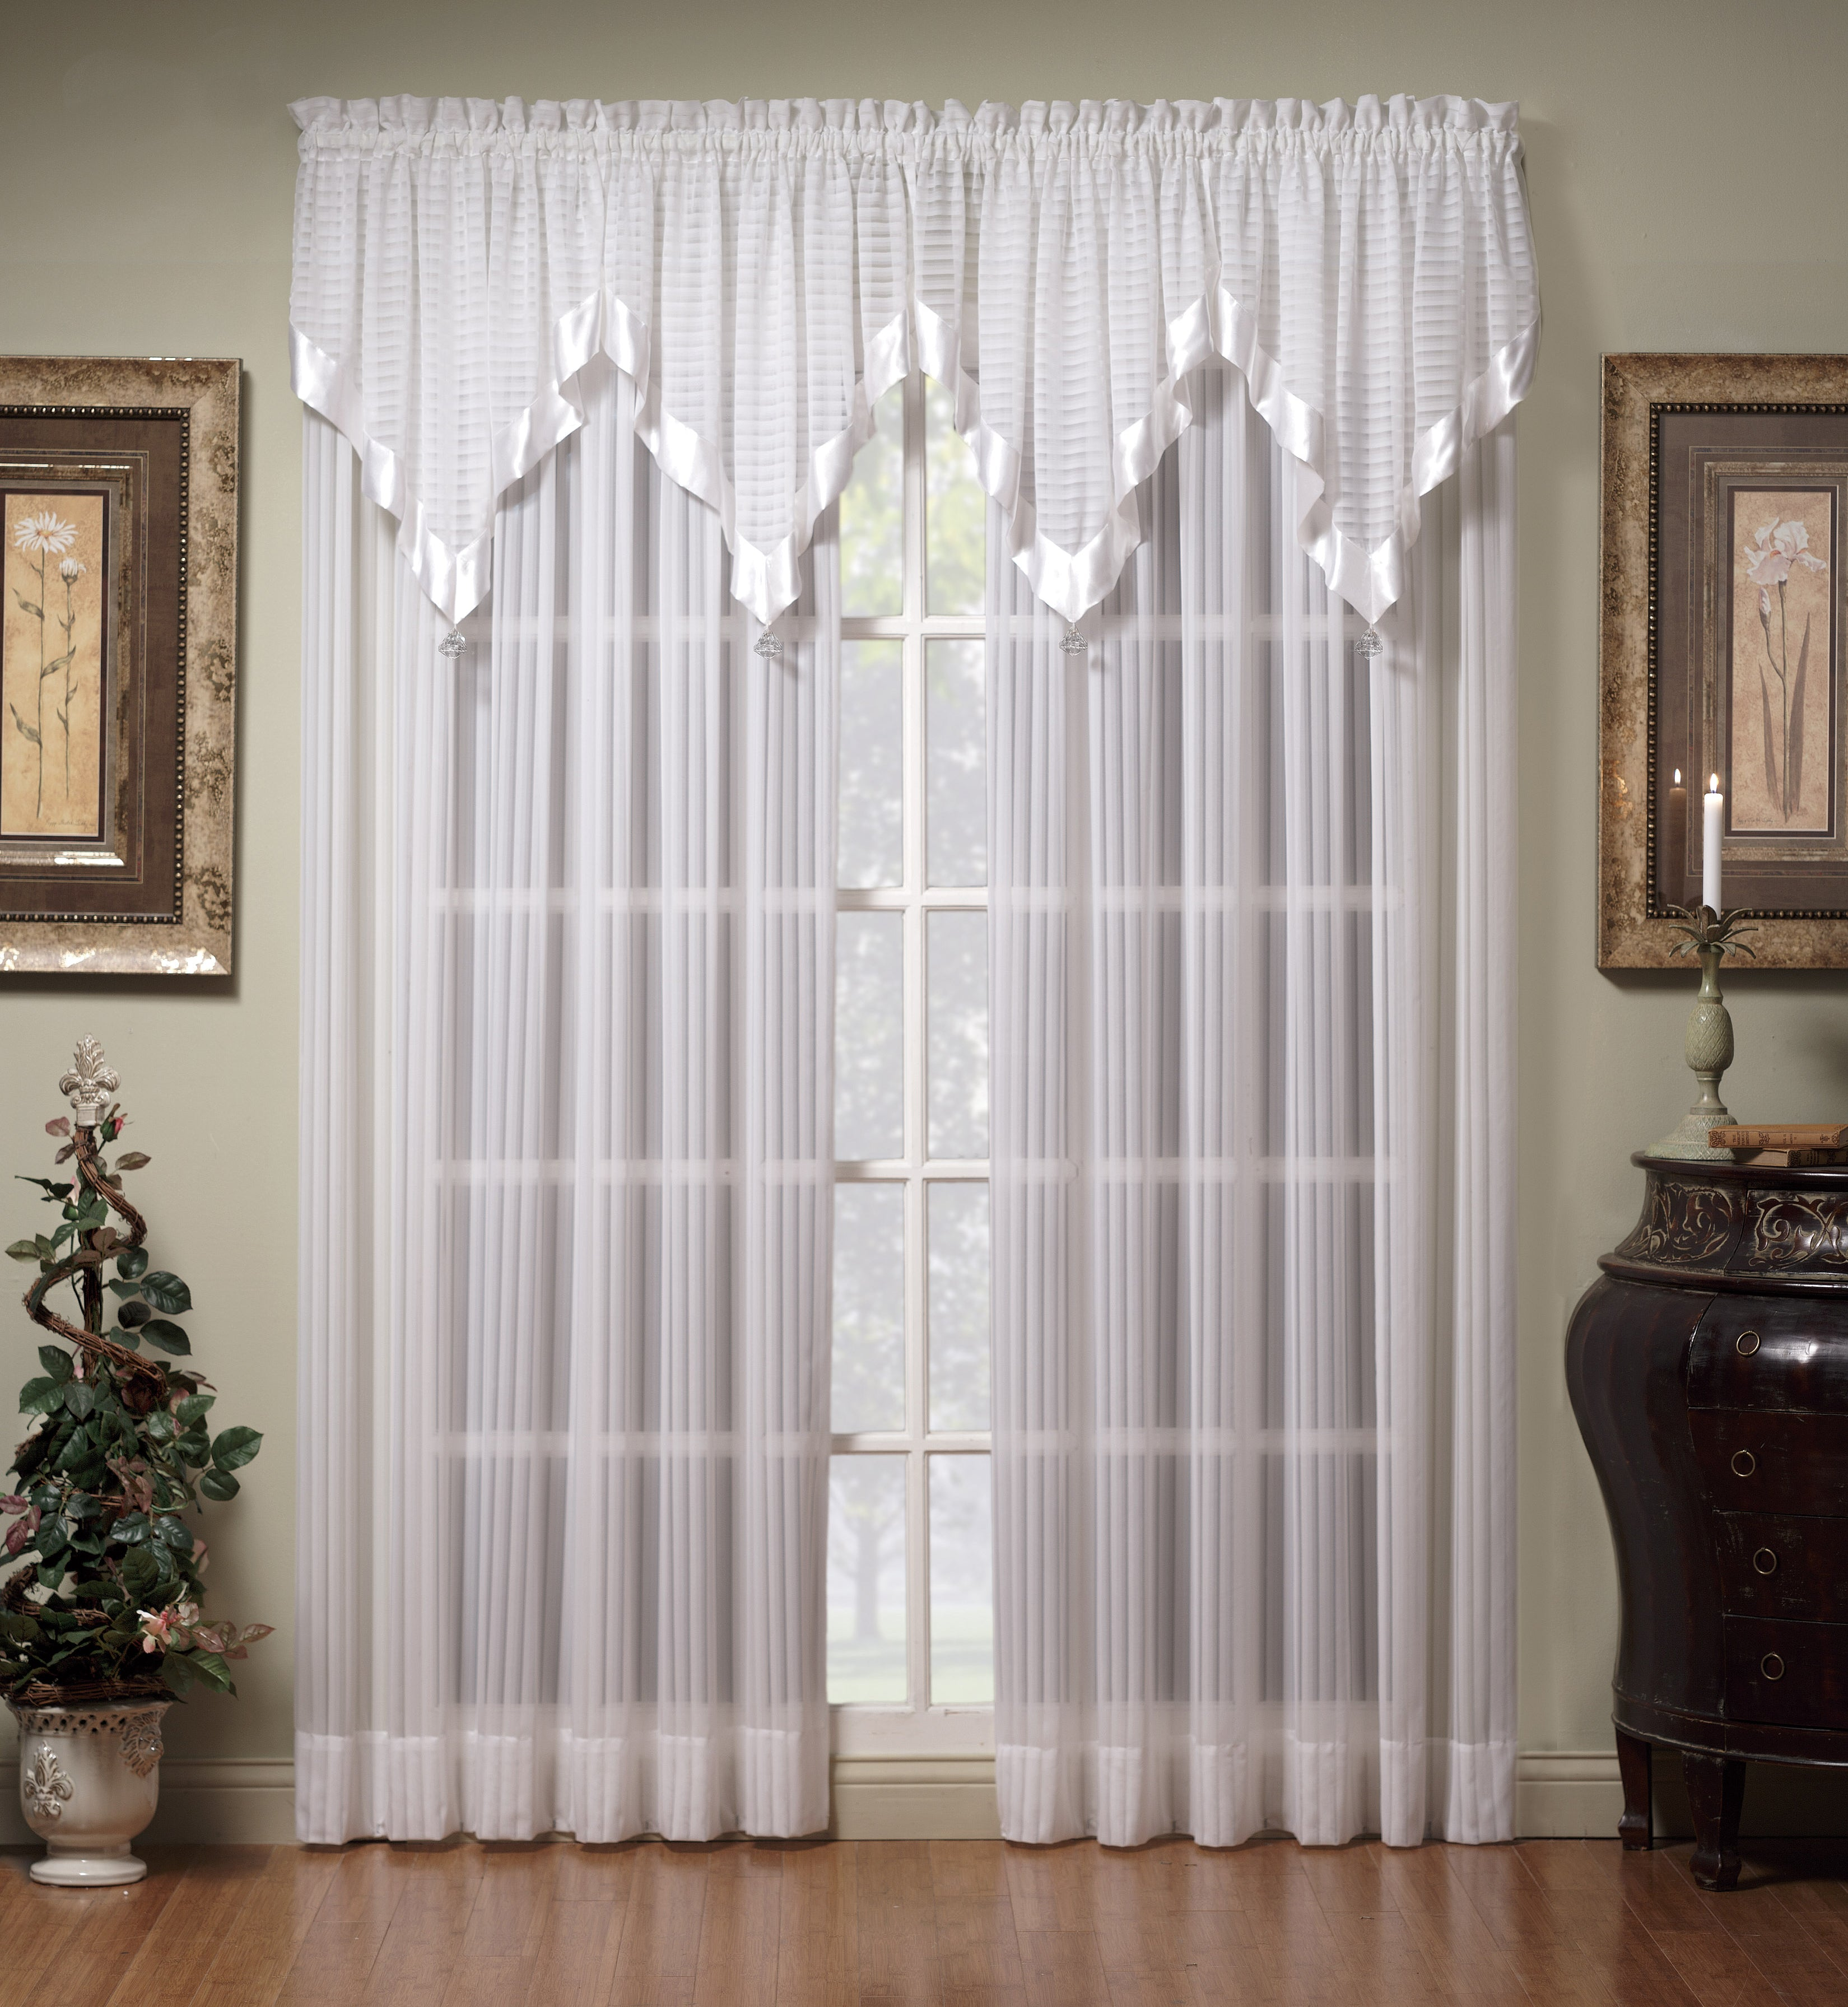 Silhouette Sheer Rod Pocket Collection Marburn Curtains